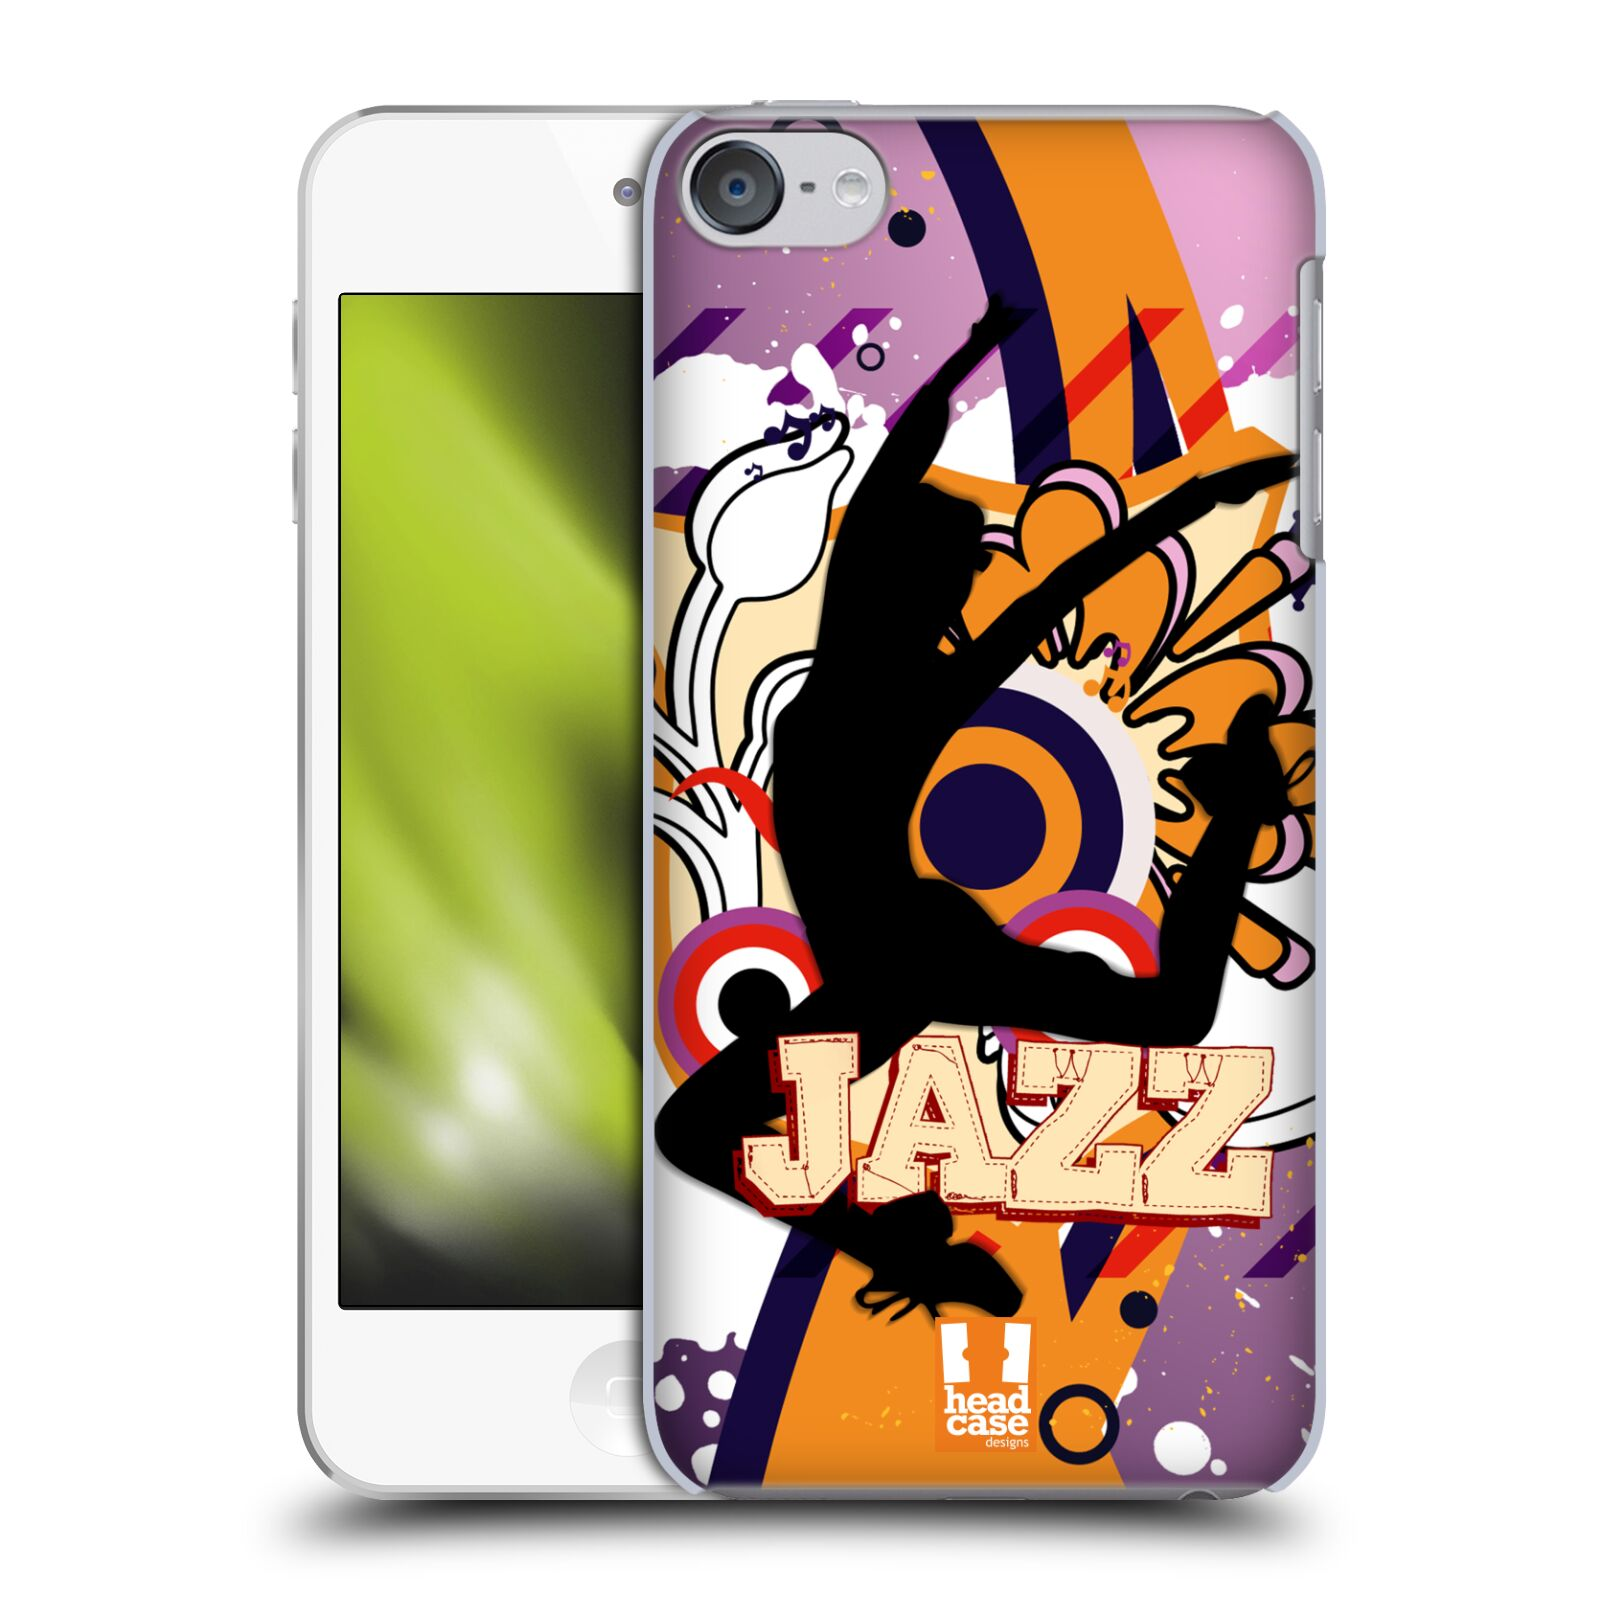 Taki Taki Lumba Mp3 Audio: HEAD CASE DESIGNS JUST DANCE HARD BACK CASE FOR APPLE IPOD